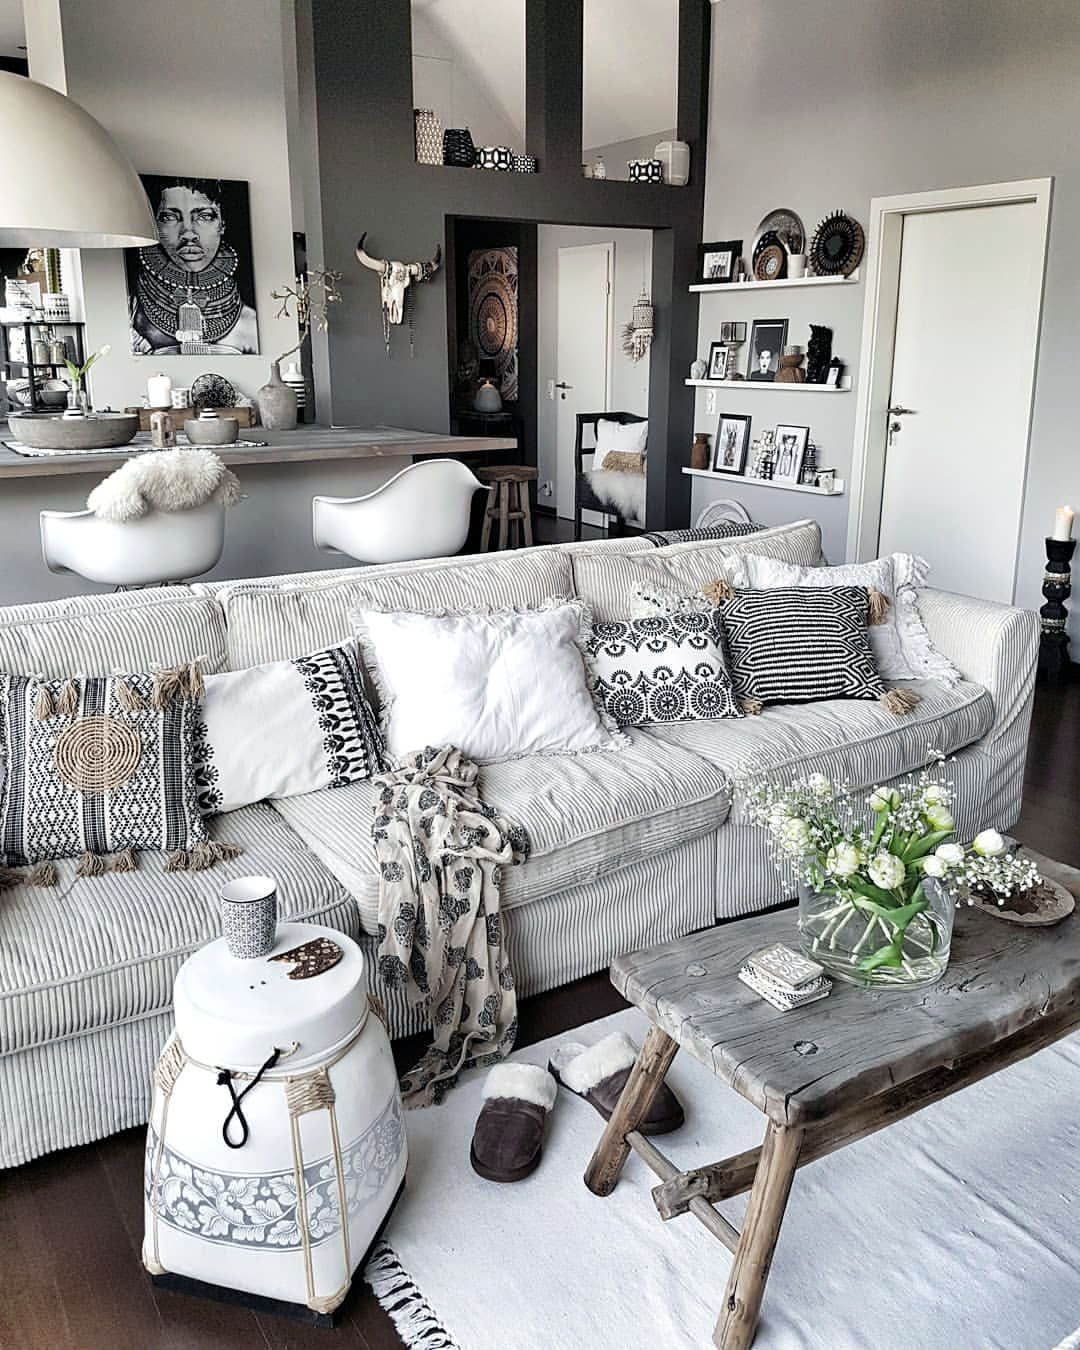 livingroom candidate the living room candidate living room candidate home